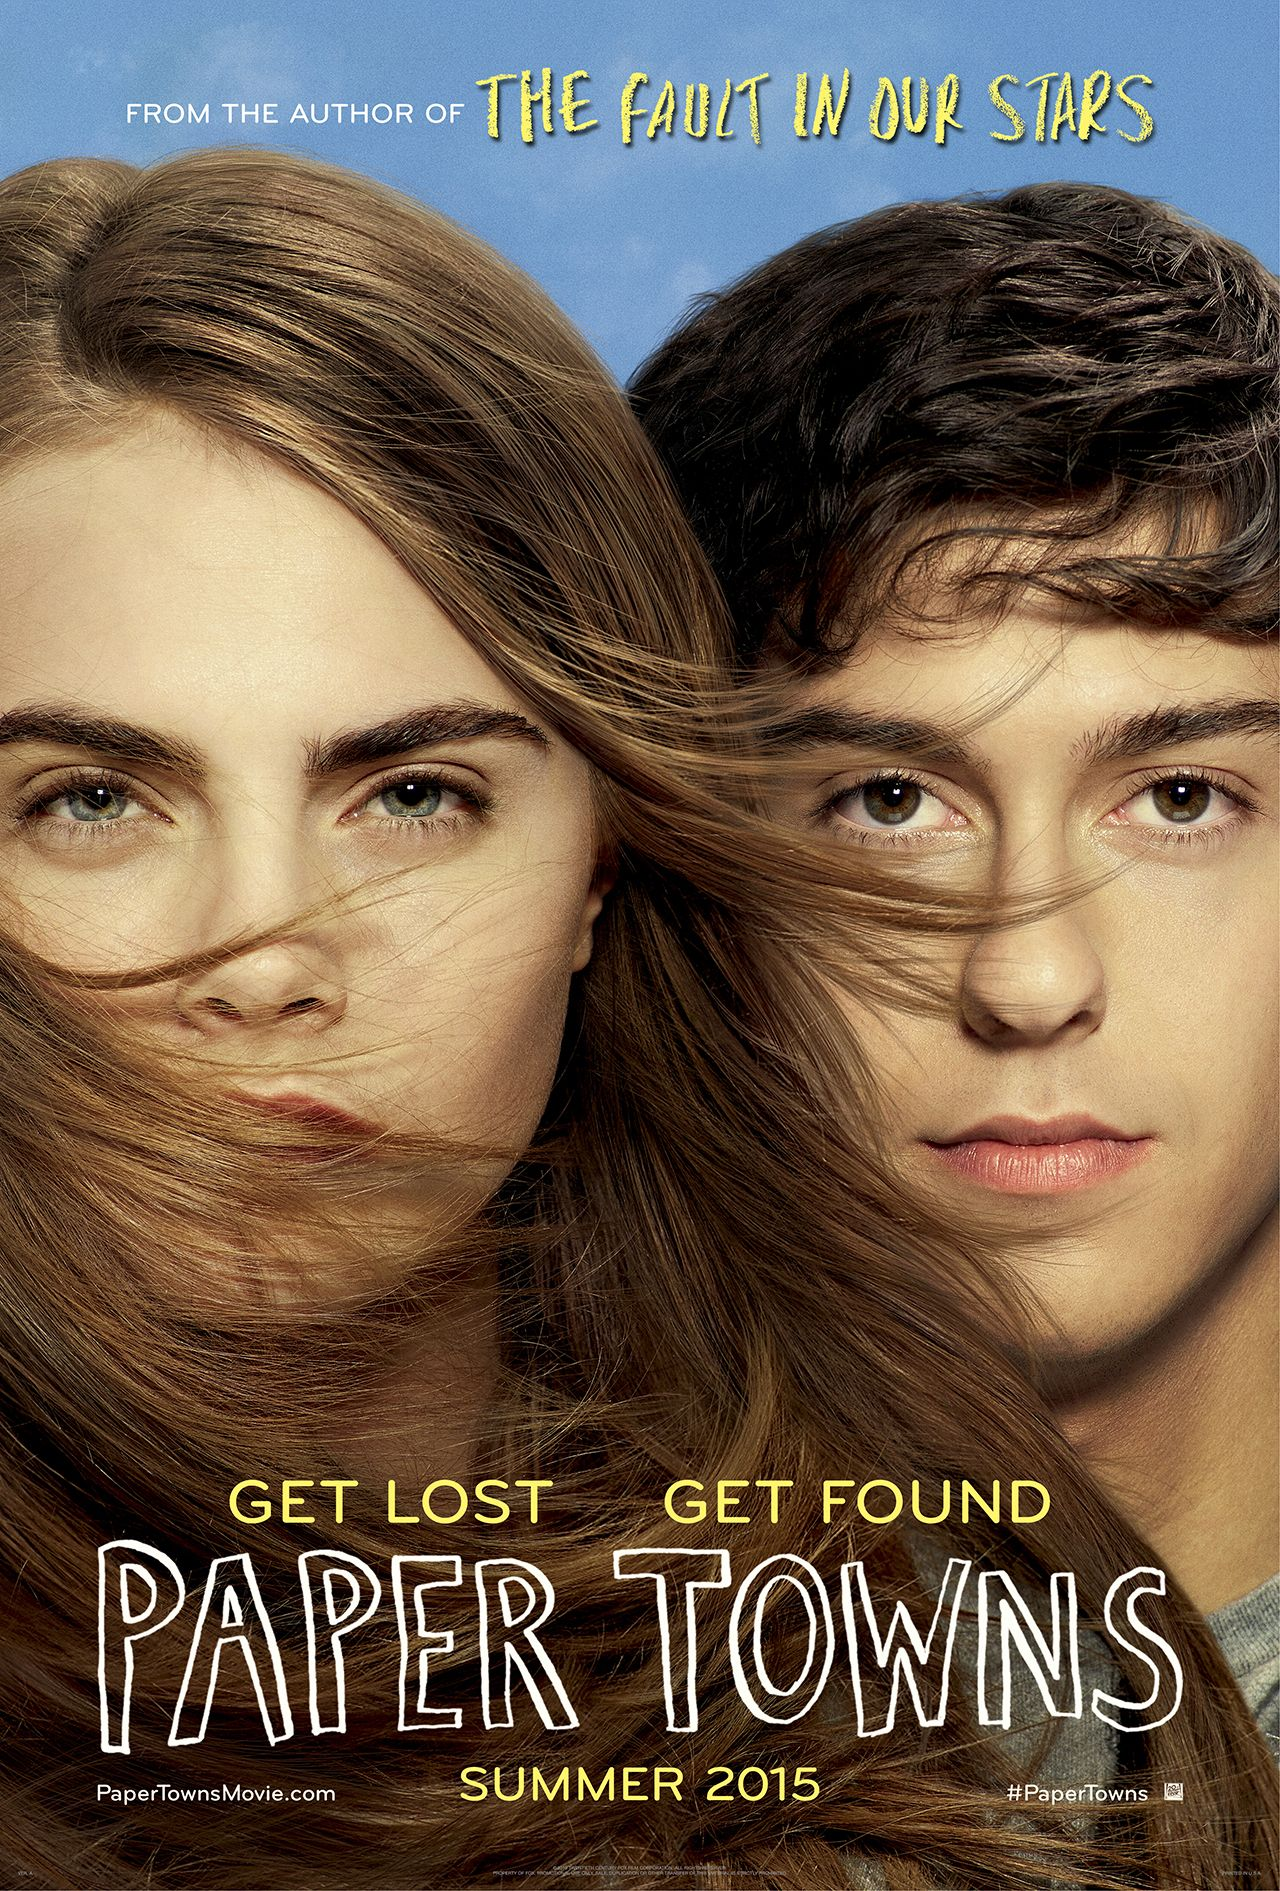 Images About Paper Towns On Pinterest Cara Delevingne Eabeffaabebadbdffc Paper Towns